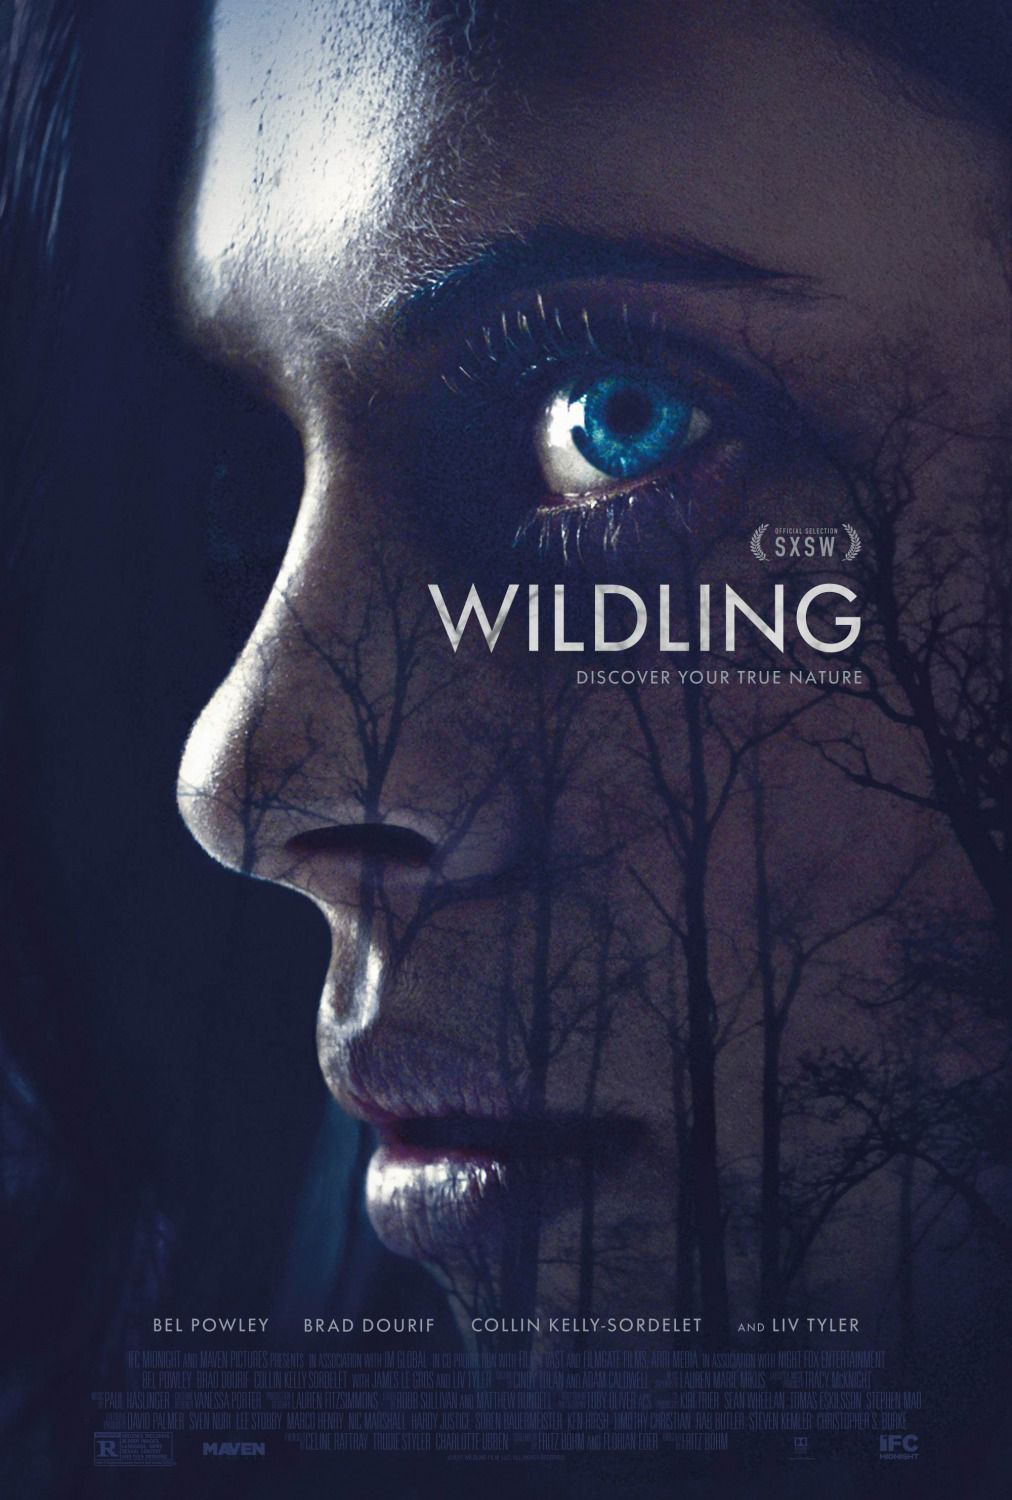 Wildling - Discover your true nature - Horror film poster